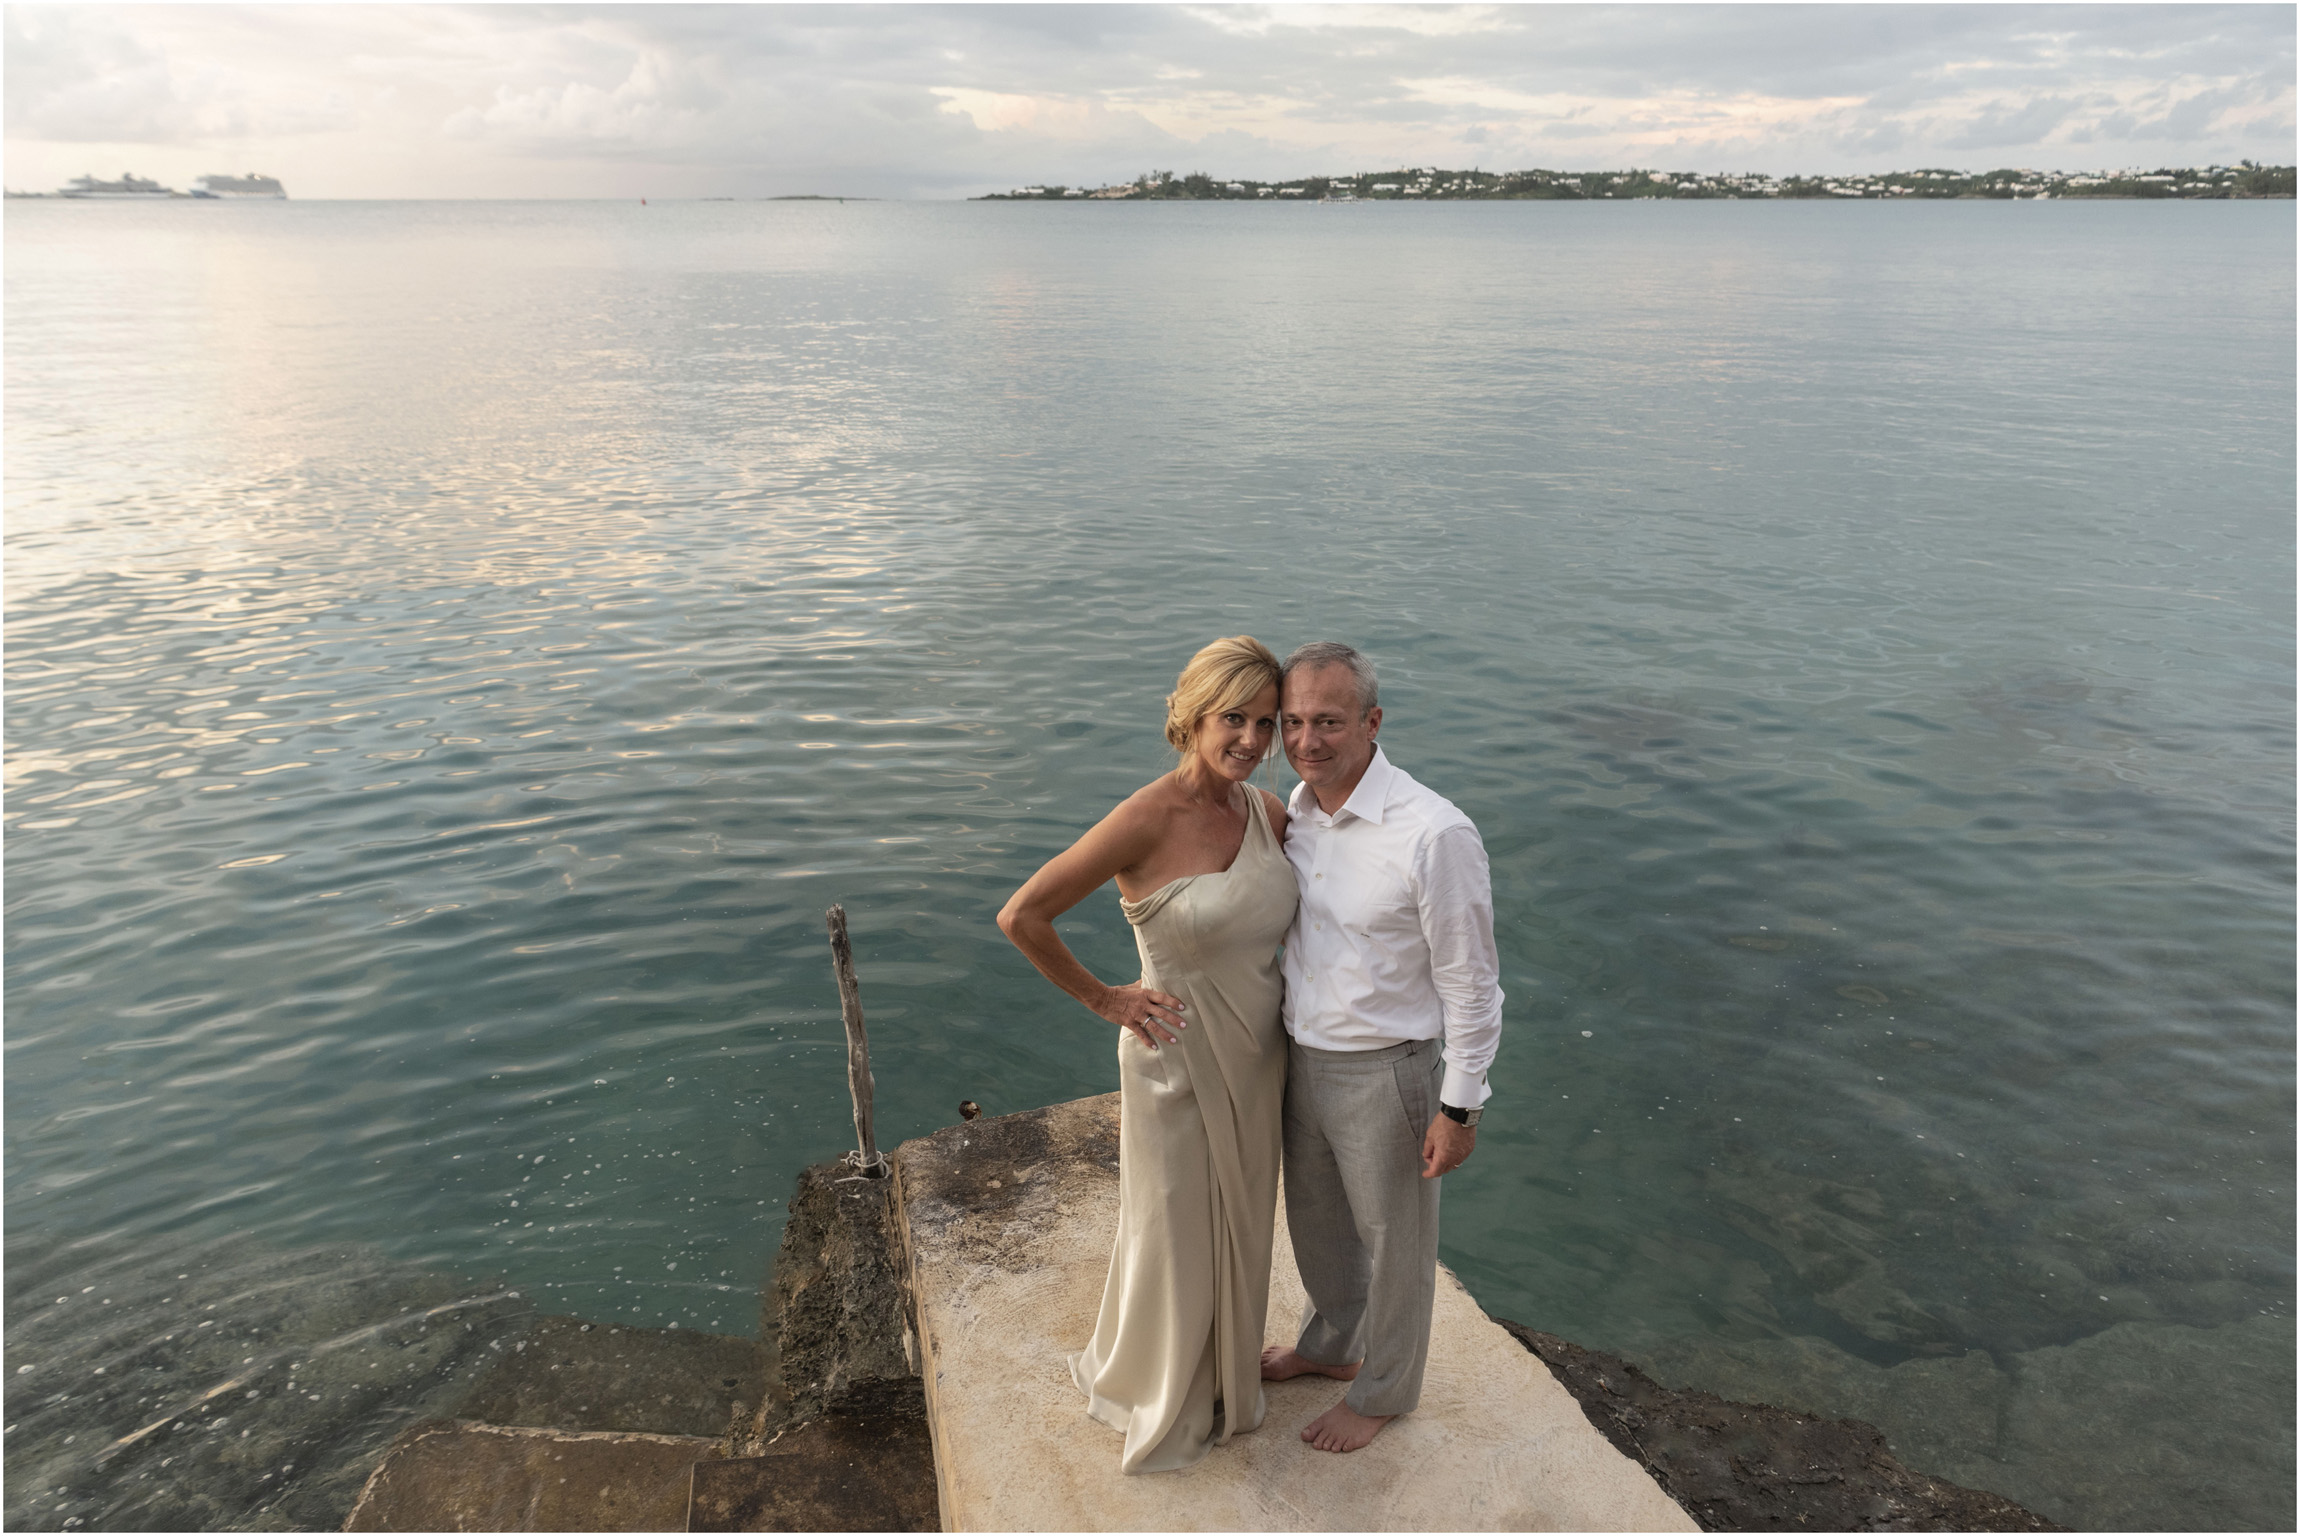 ©FianderFoto_Bermuda_Wedding_Photographer_Long_Island_Bermuda_Nancy_Ray_104.jpg